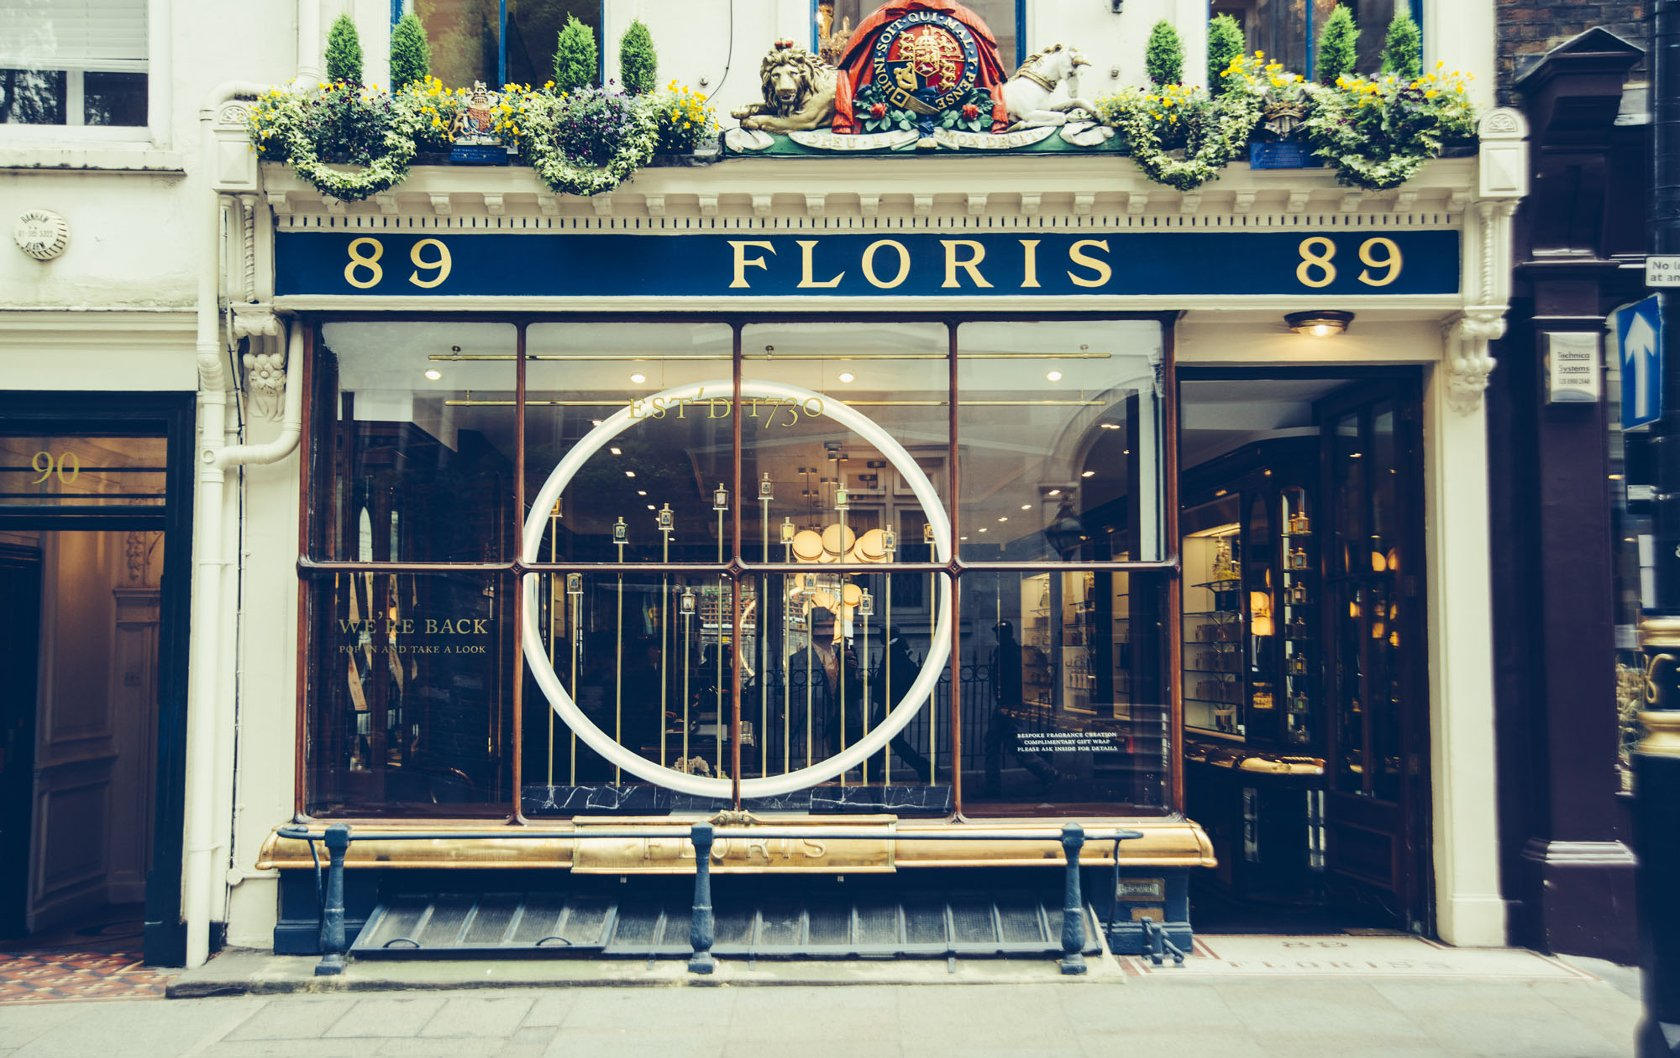 Floris: Perfumer To The Queen